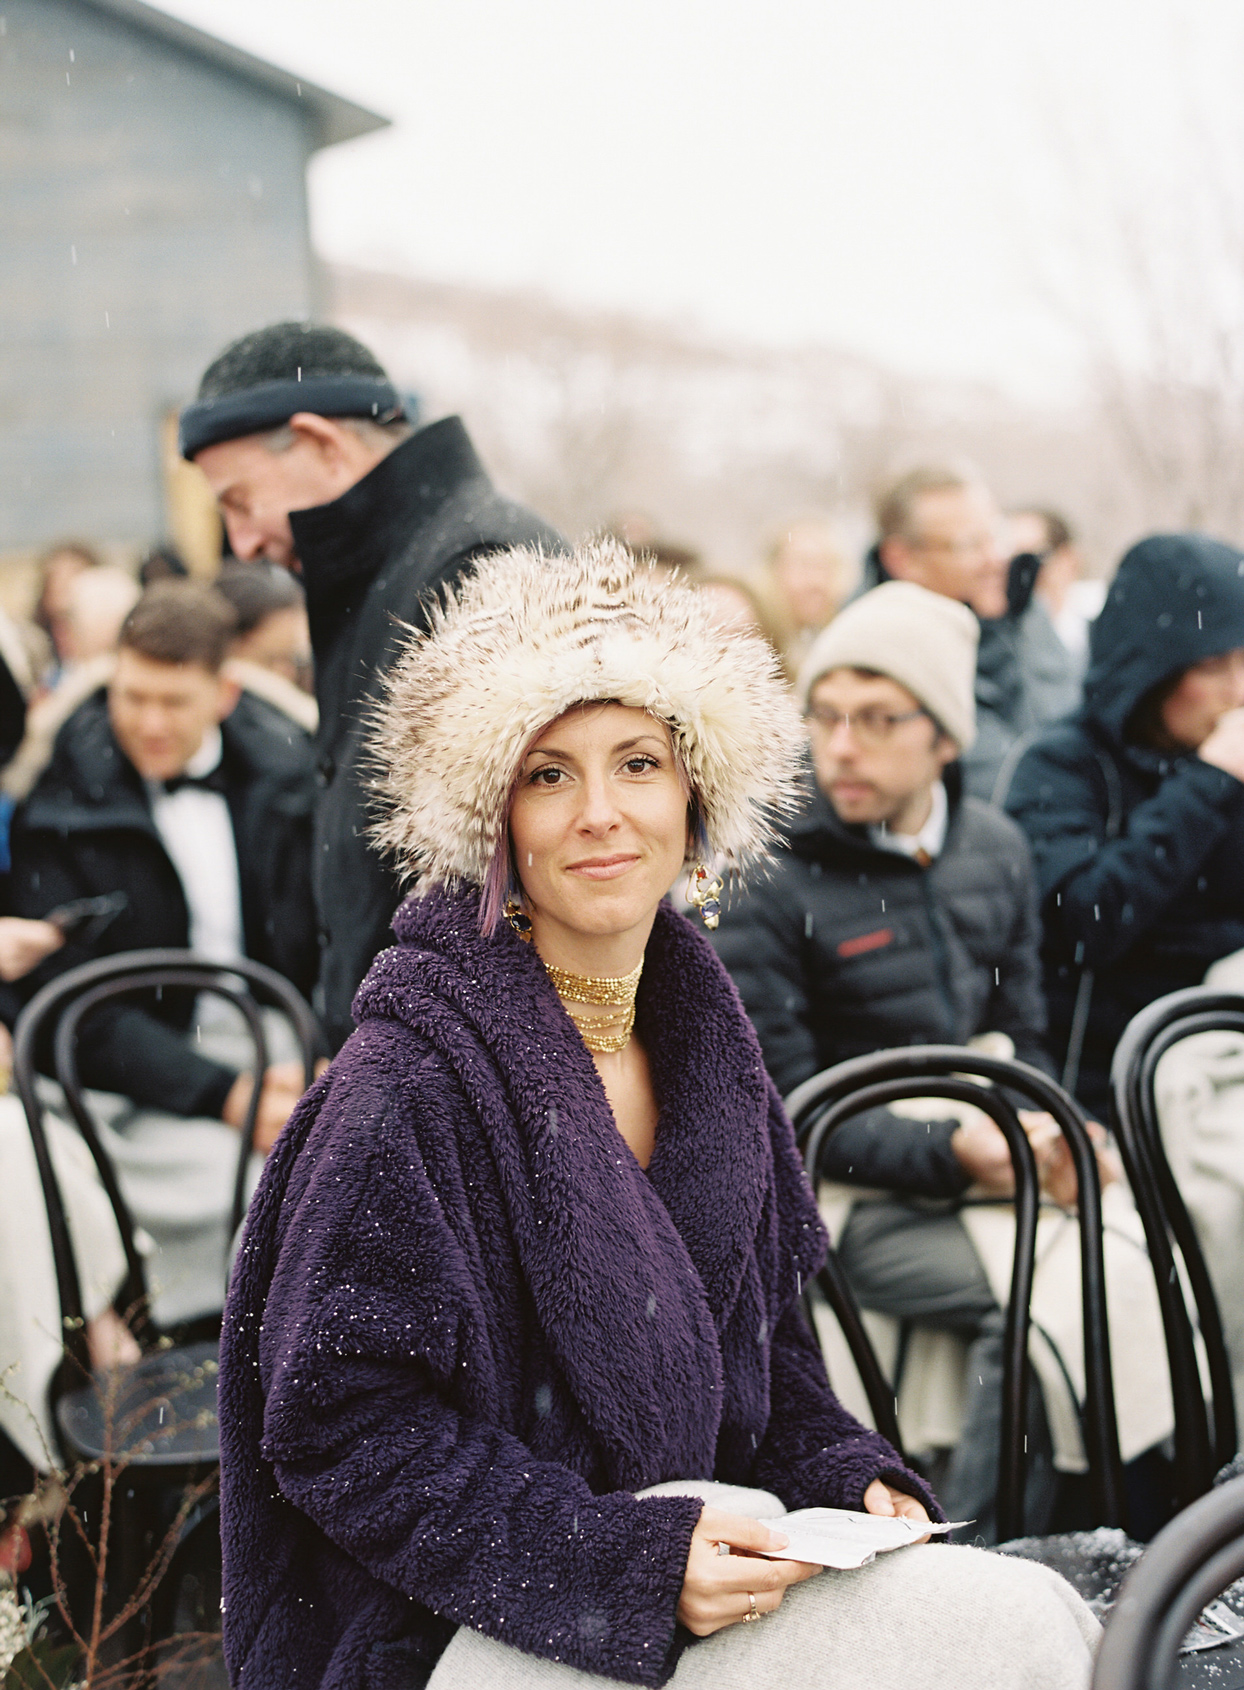 wedding guests wearing furry hat and purple coat